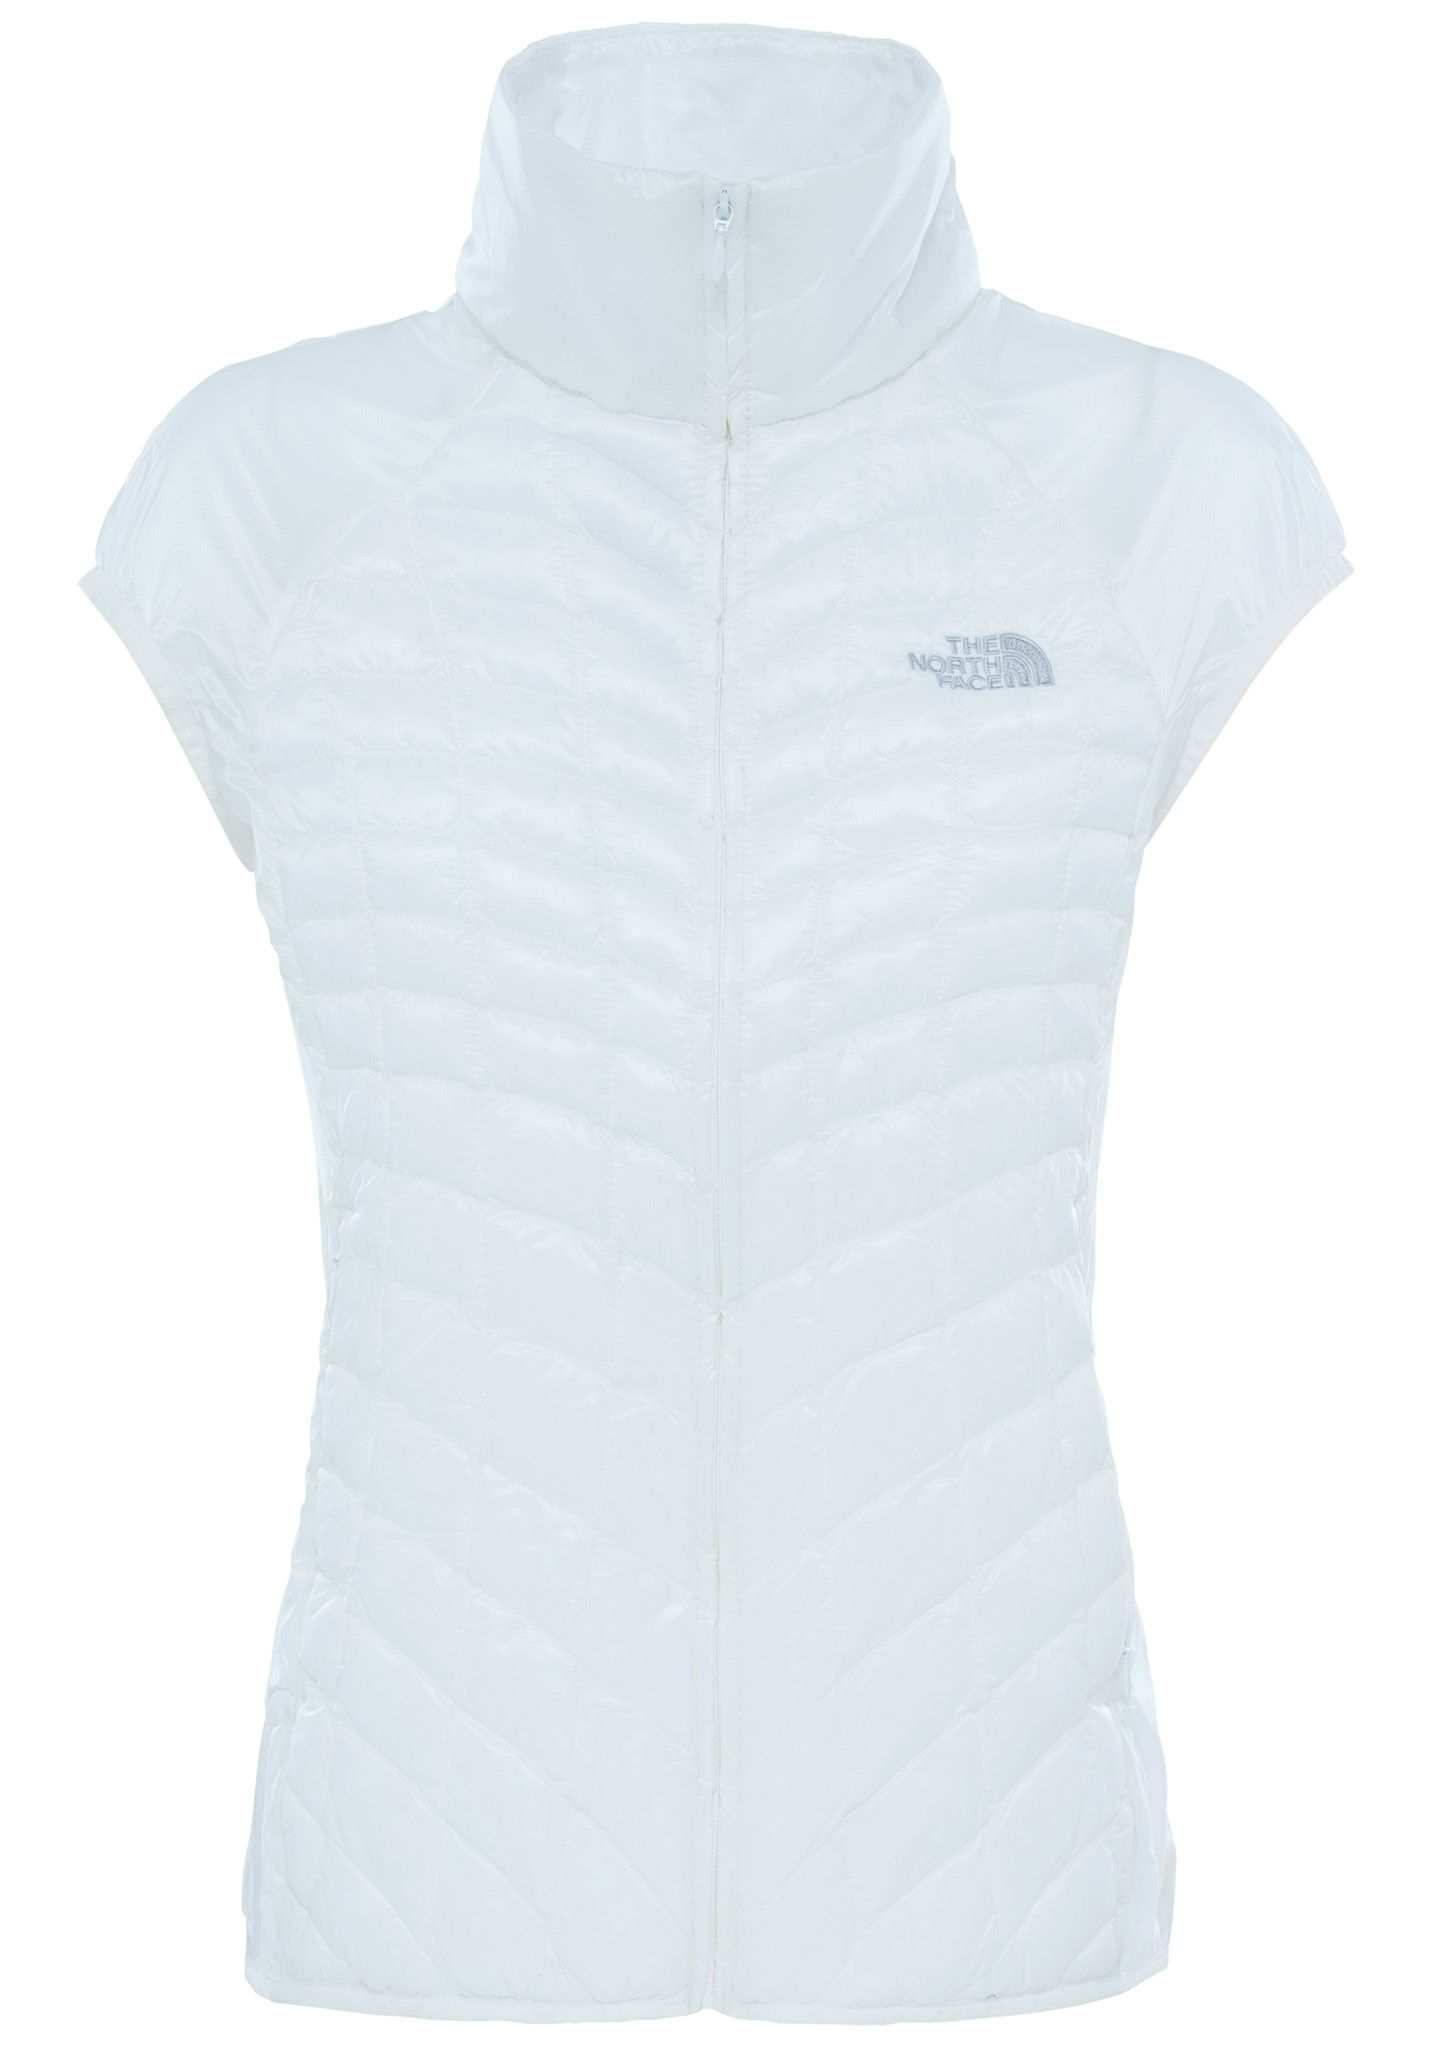 6f96a79d5f THE NORTH FACE Tansa Hybrid Thermoball - Doudoune sans manche pour Femme -  Blanc - Planet Sports